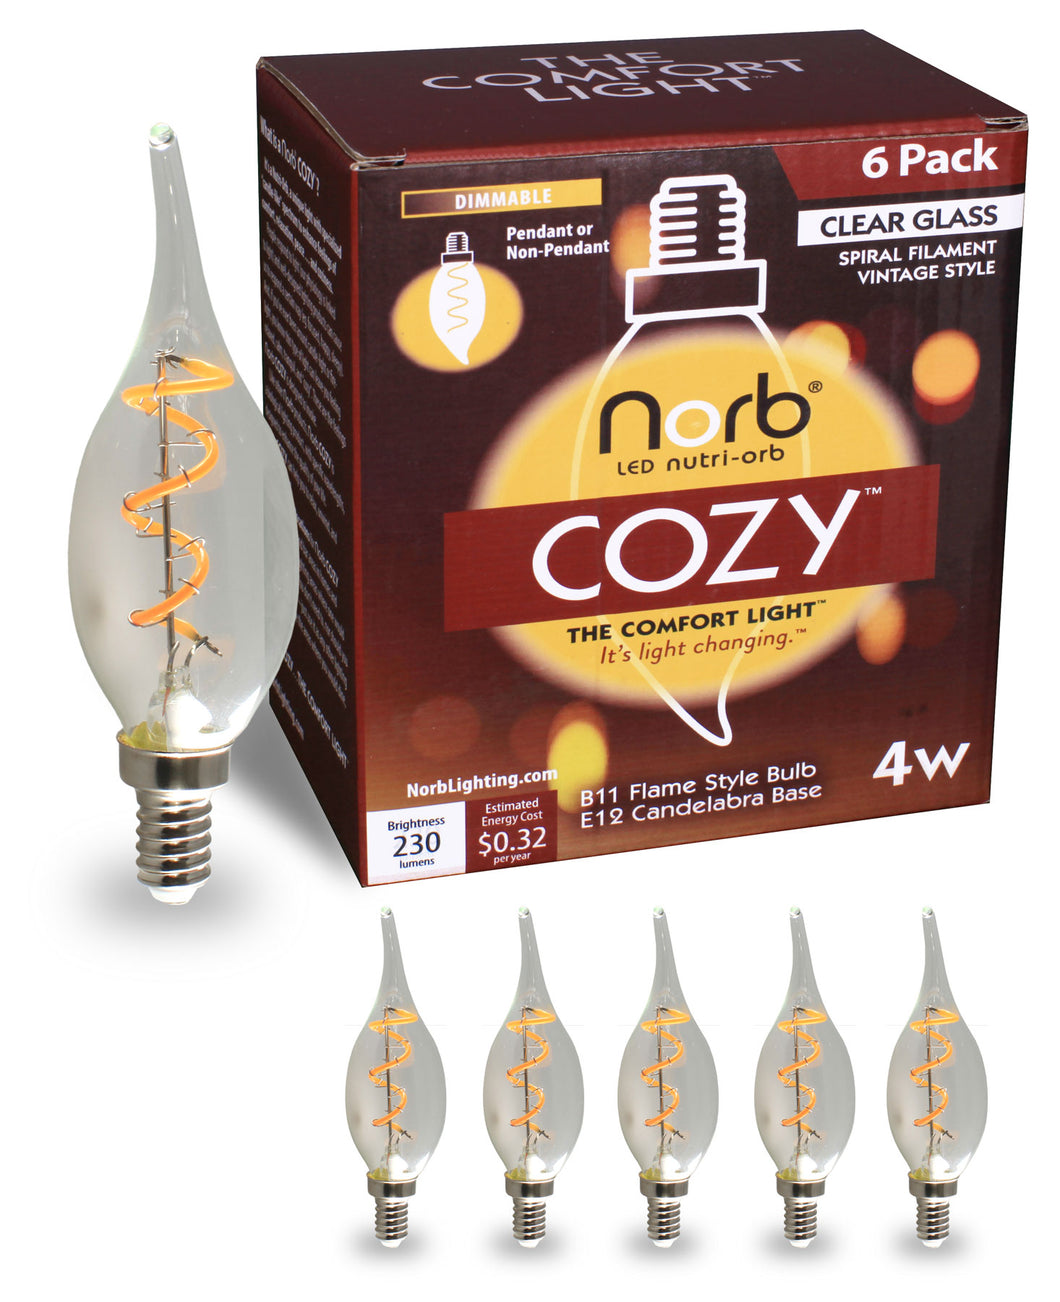 NorbCOZY Candelabra Flame (B11 Flame)